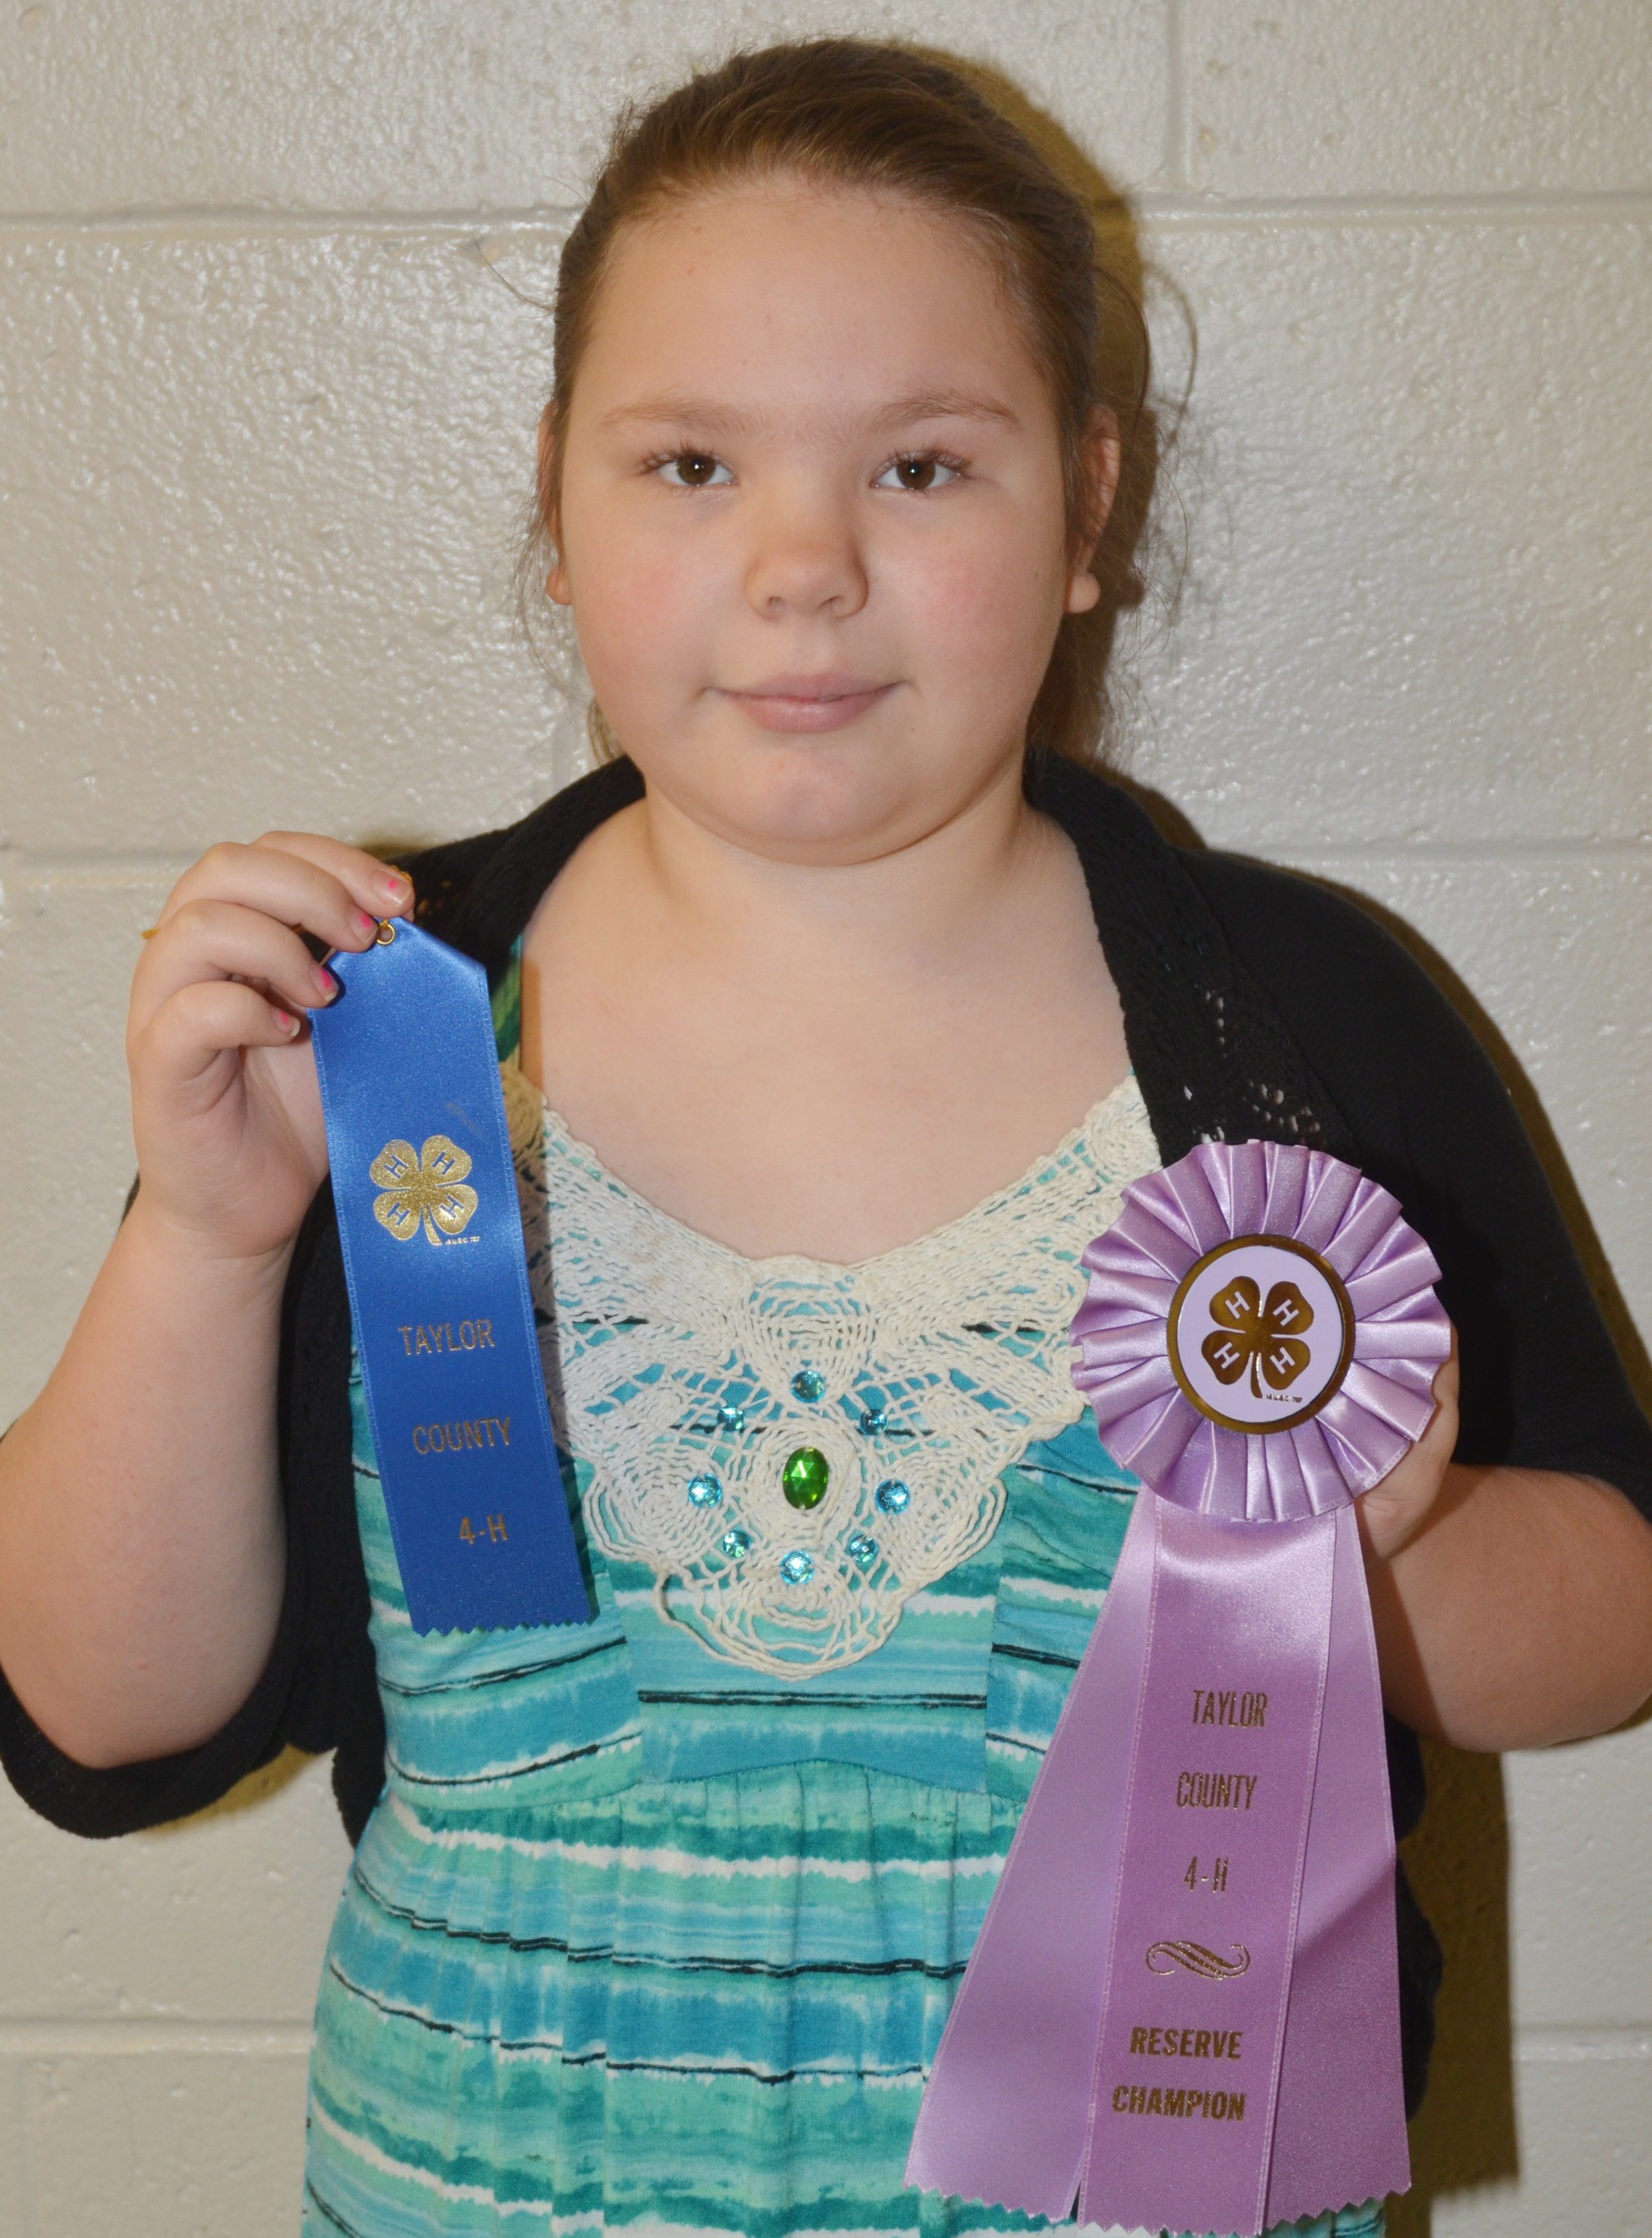 CMS fourth-grader Averi Perkins was named reserve champion in the 9-year-old category of this year's Taylor County 4-H Talk Meet.